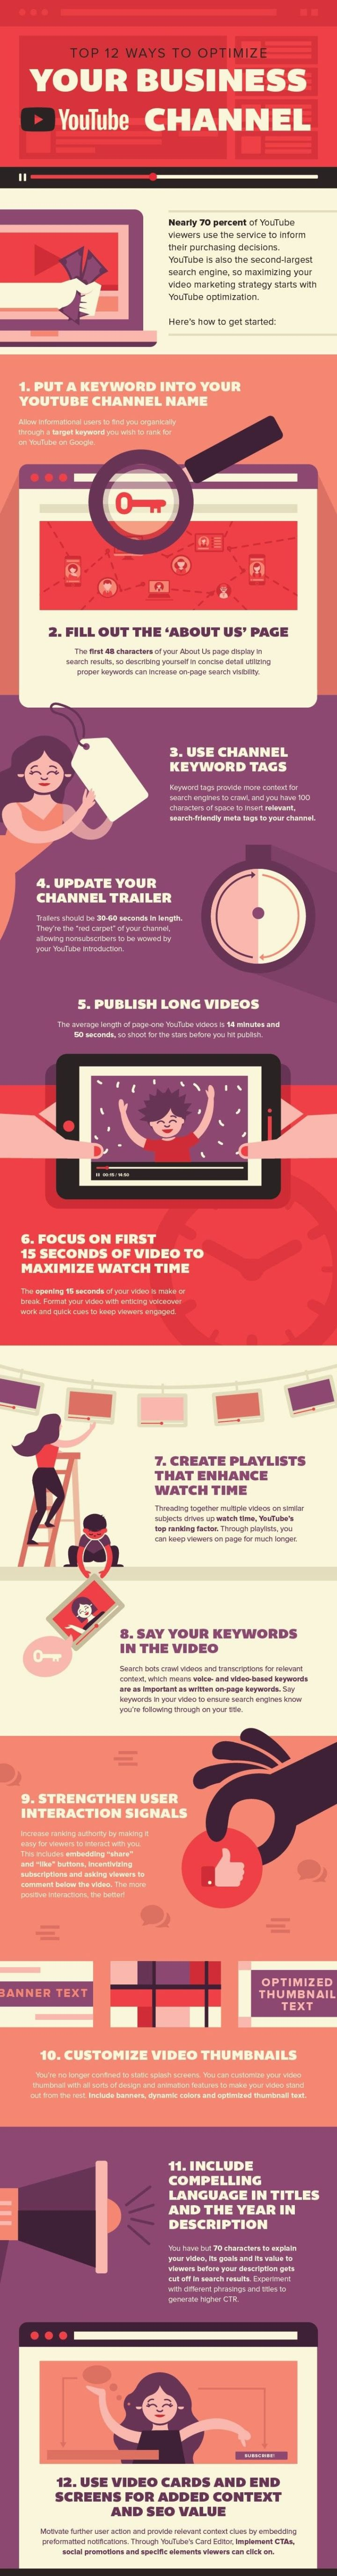 12 Tips On Setting Up Your Corporate YouTube Channel [infographic] - Internet